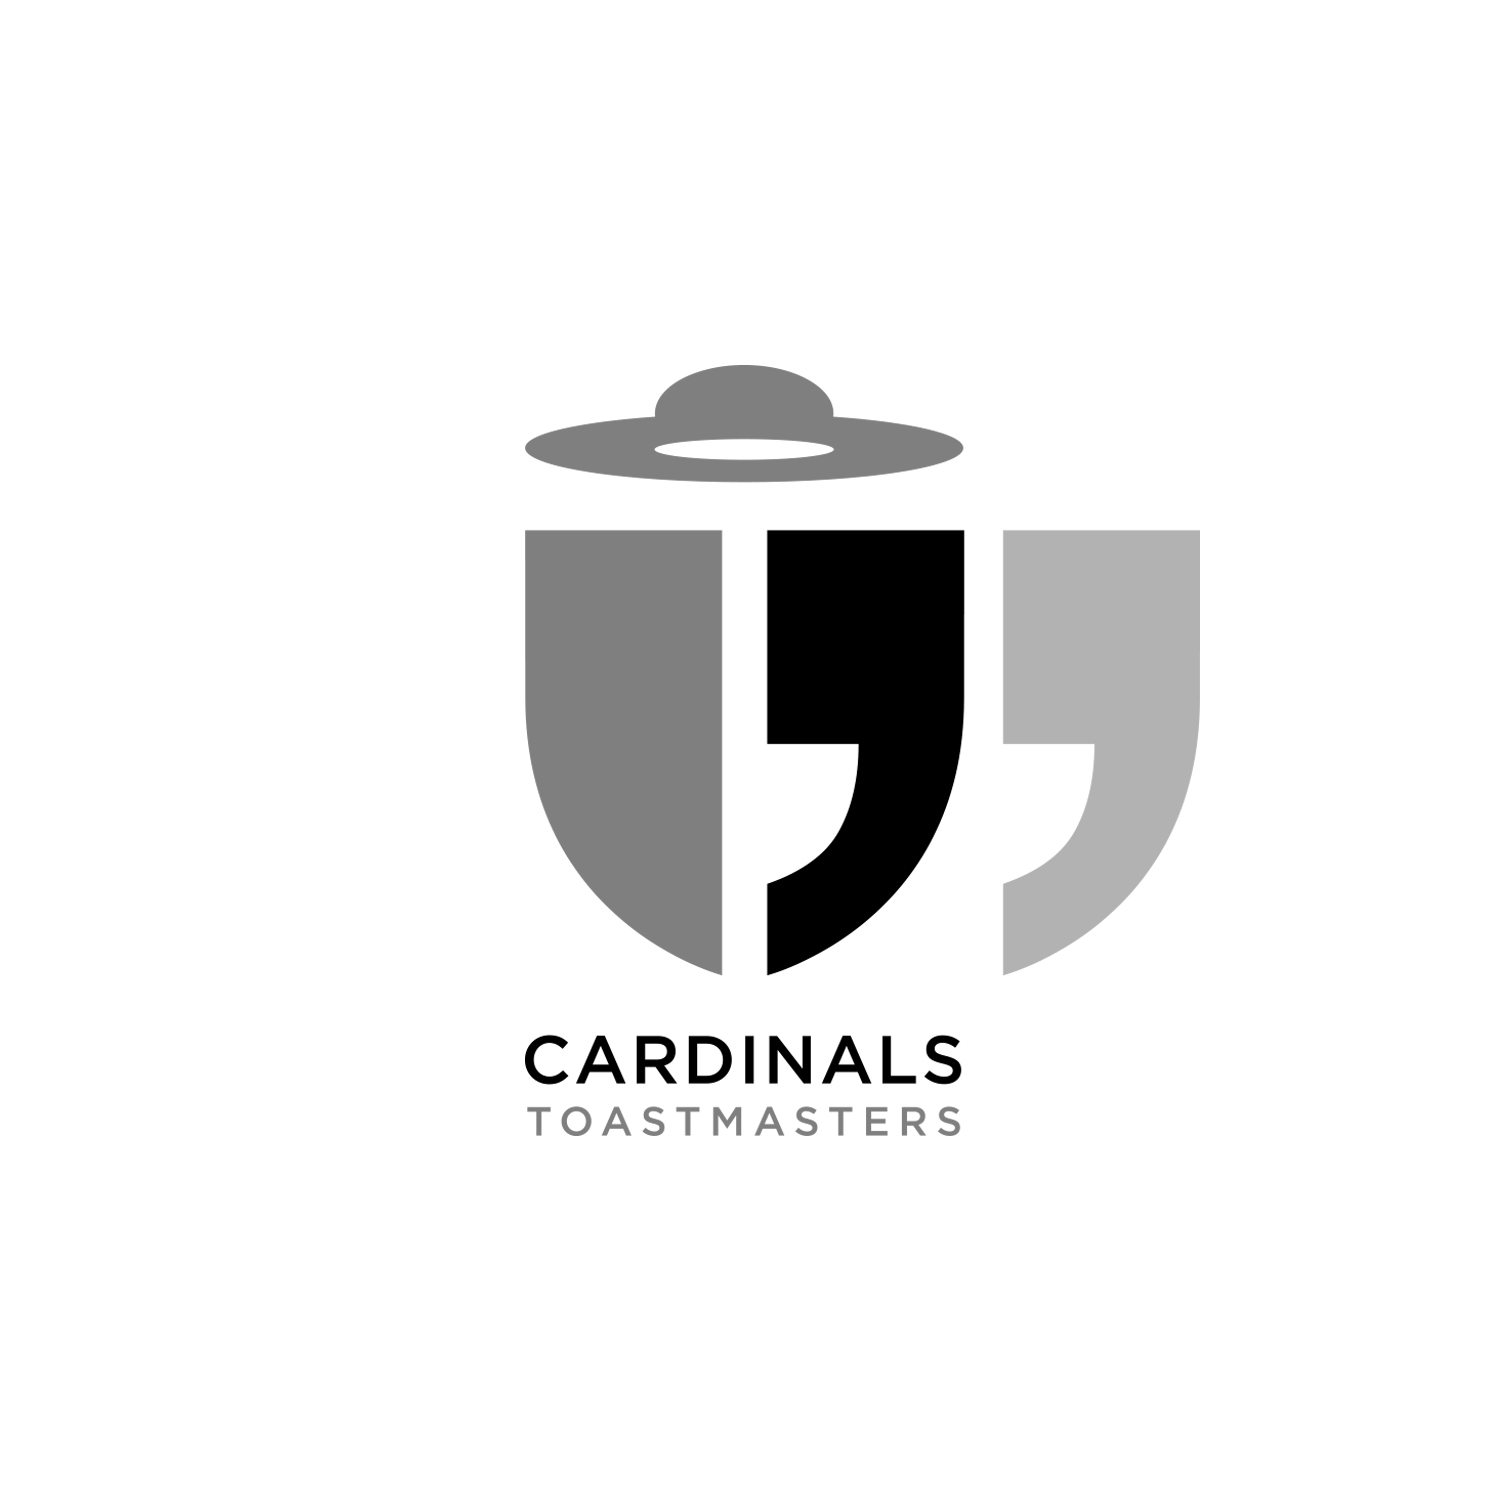 London Cardinals Toastmasters